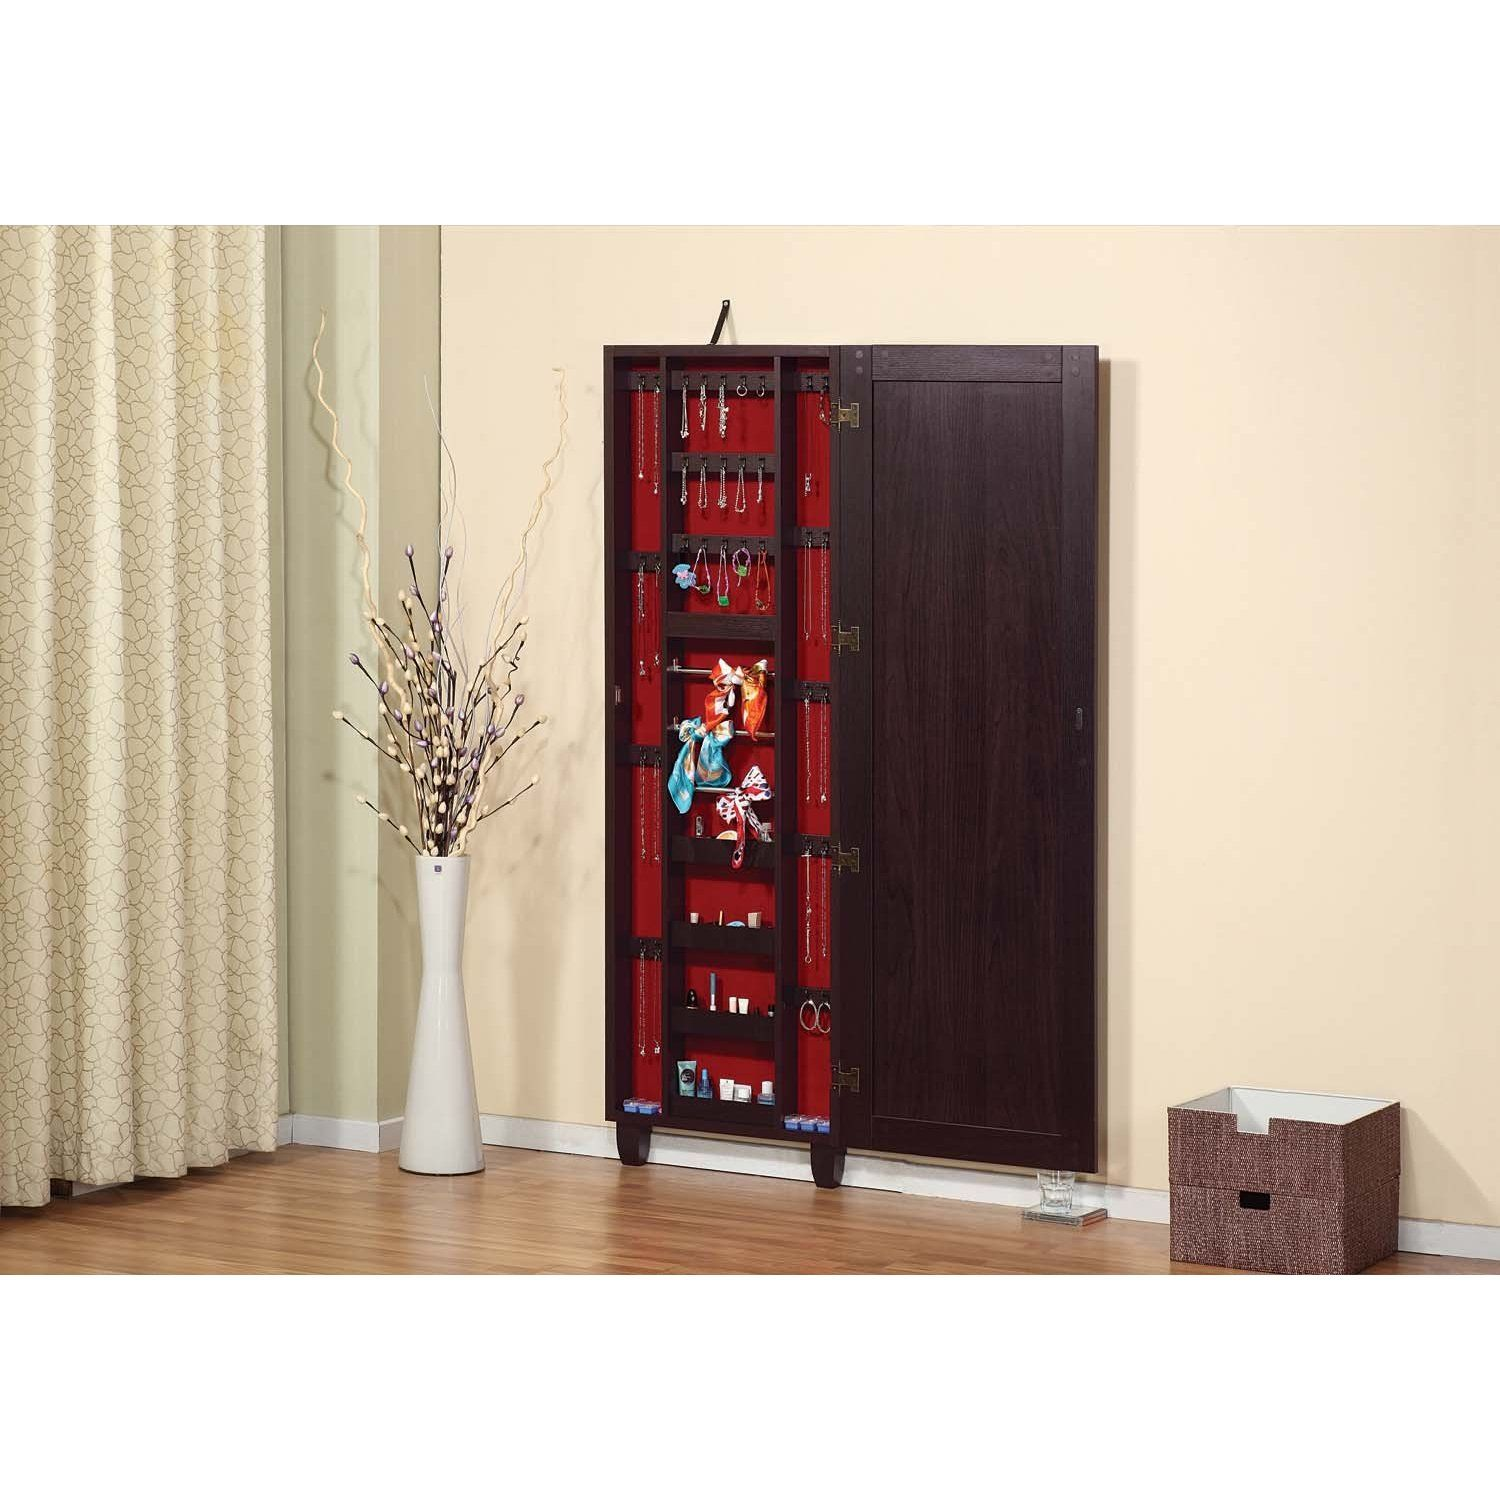 FurnitureMaxx Clara Wall Mount Mirrors with Jewelry Armoire